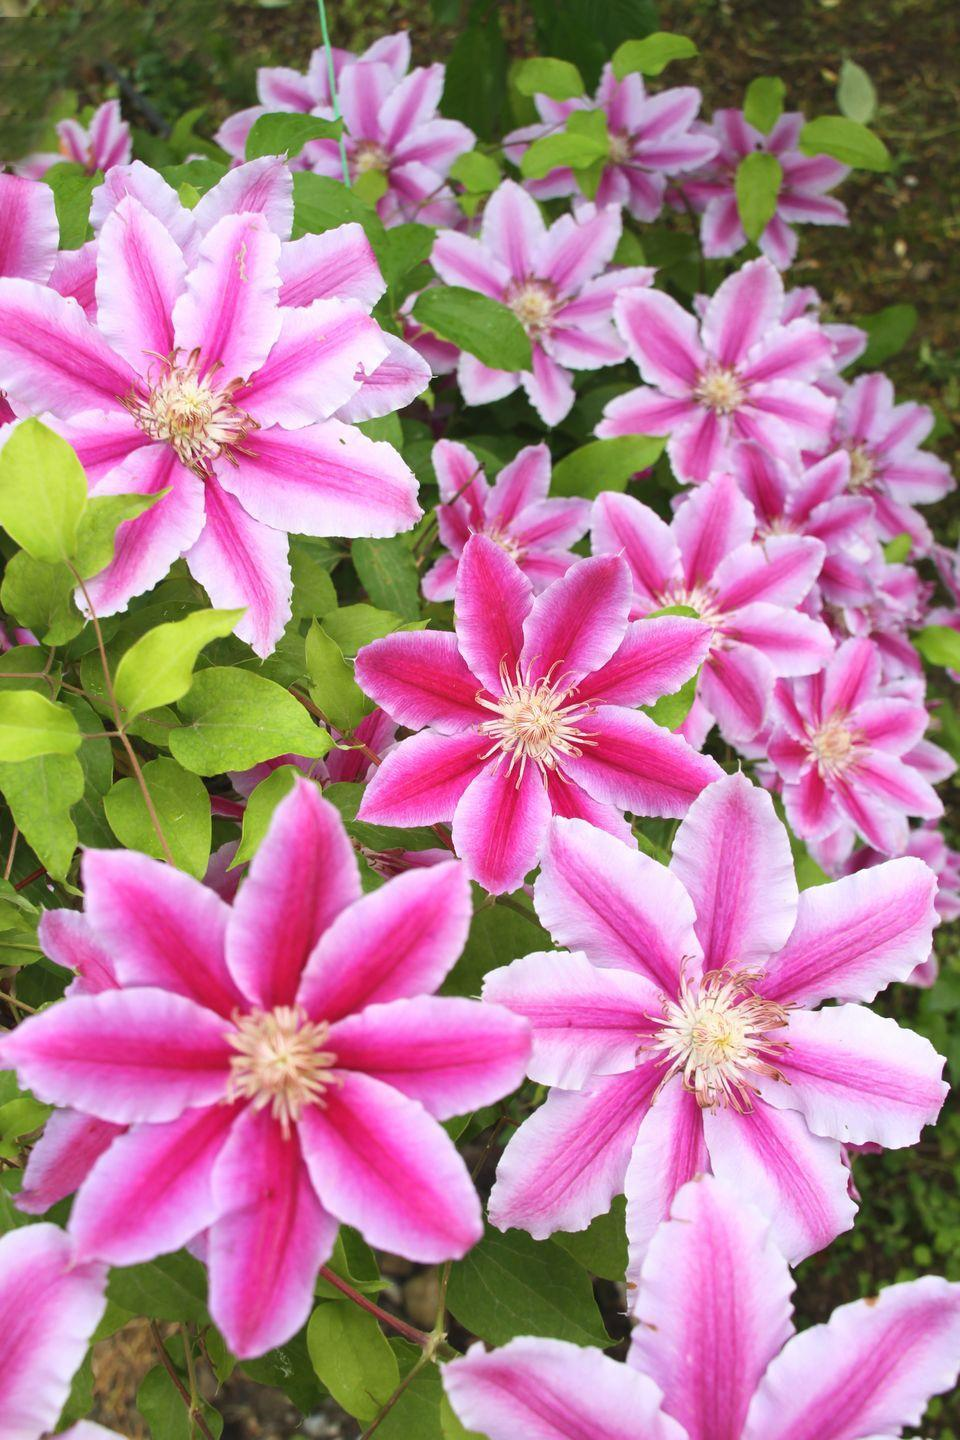 """<p>Many different kinds of clematis are available; some bloom in spring, some in the fall. And some types bloom all season long. The flowers come in every color from palest pink to deep purple. They like their heads in full sun but prefer their roots to be shaded, so plant other perennials at their base to help shelter the roots.</p><p><a class=""""link rapid-noclick-resp"""" href=""""https://www.amazon.com/Summer-Clematis-Red-Purple-Flowers-Gallon/dp/B01BXXW1OA/ref=sr_1_2?dchild=1&keywords=clematis&qid=1597428607&s=lawn-garden&sr=1-2&tag=syn-yahoo-20&ascsubtag=%5Bartid%7C10050.g.1456%5Bsrc%7Cyahoo-us"""" rel=""""nofollow noopener"""" target=""""_blank"""" data-ylk=""""slk:SHOP CLEMATIS"""">SHOP CLEMATIS</a></p>"""